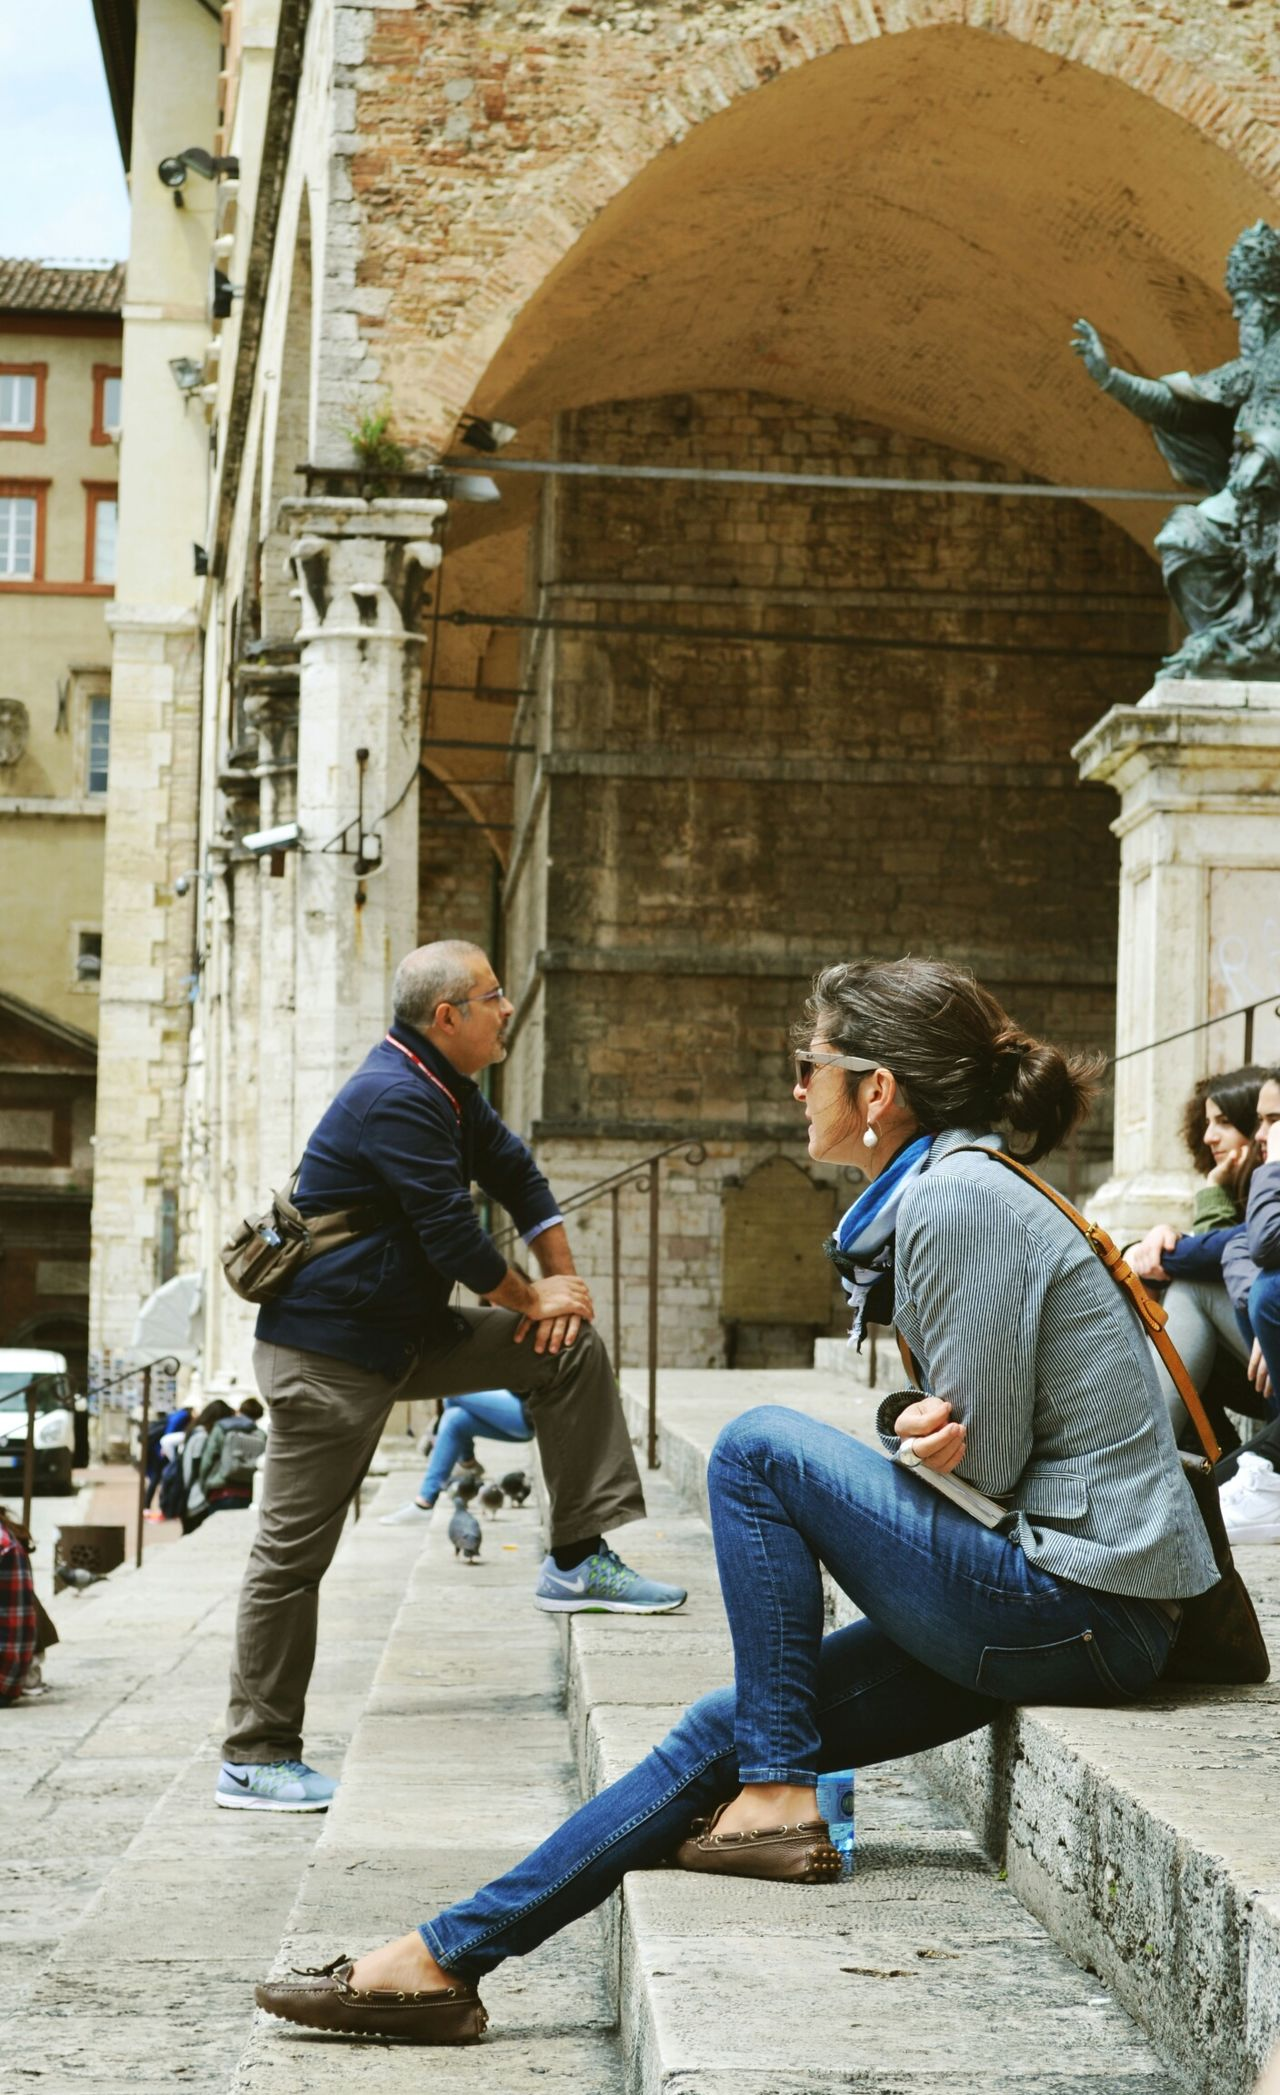 Square People Perugia Girl Street Streetphotography The Street Photographer - 2015 EyeEm Awards Traveling EyeEm Best Shots Urban Lifestyle Greetings From Italy People Photography Up Close Street Photography Not An Ordinary Postcard